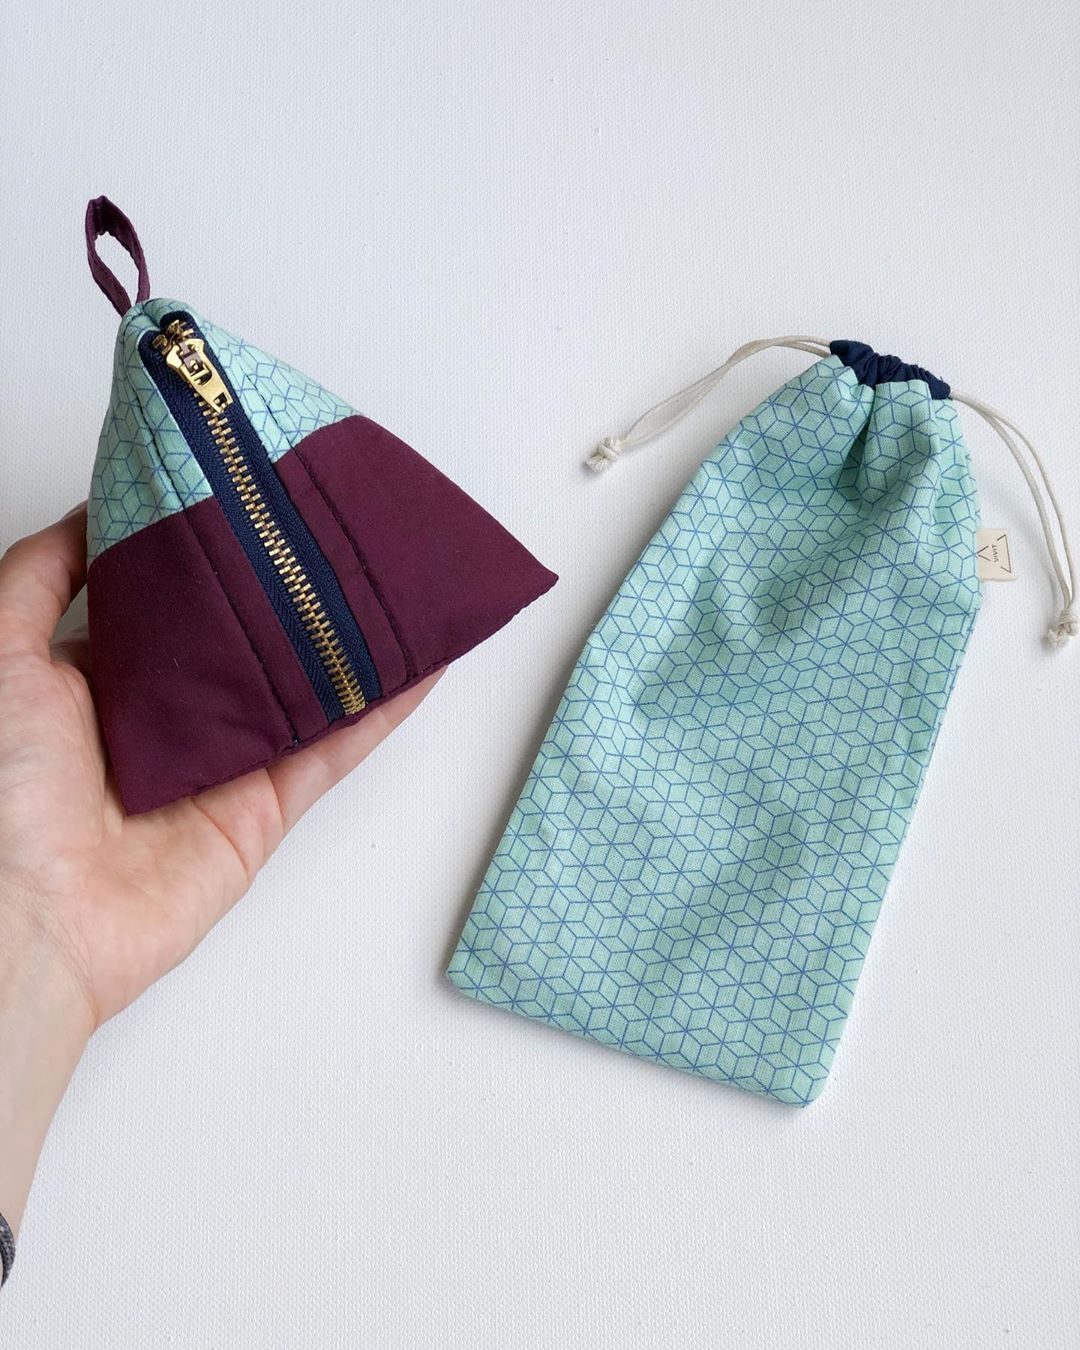 Mothers Day Gift Drawstring Pouch Handmade Drawstring Bag Handmade Gift for Her Bags For Her Reusable Gift Bags Cute Bag With Hearts